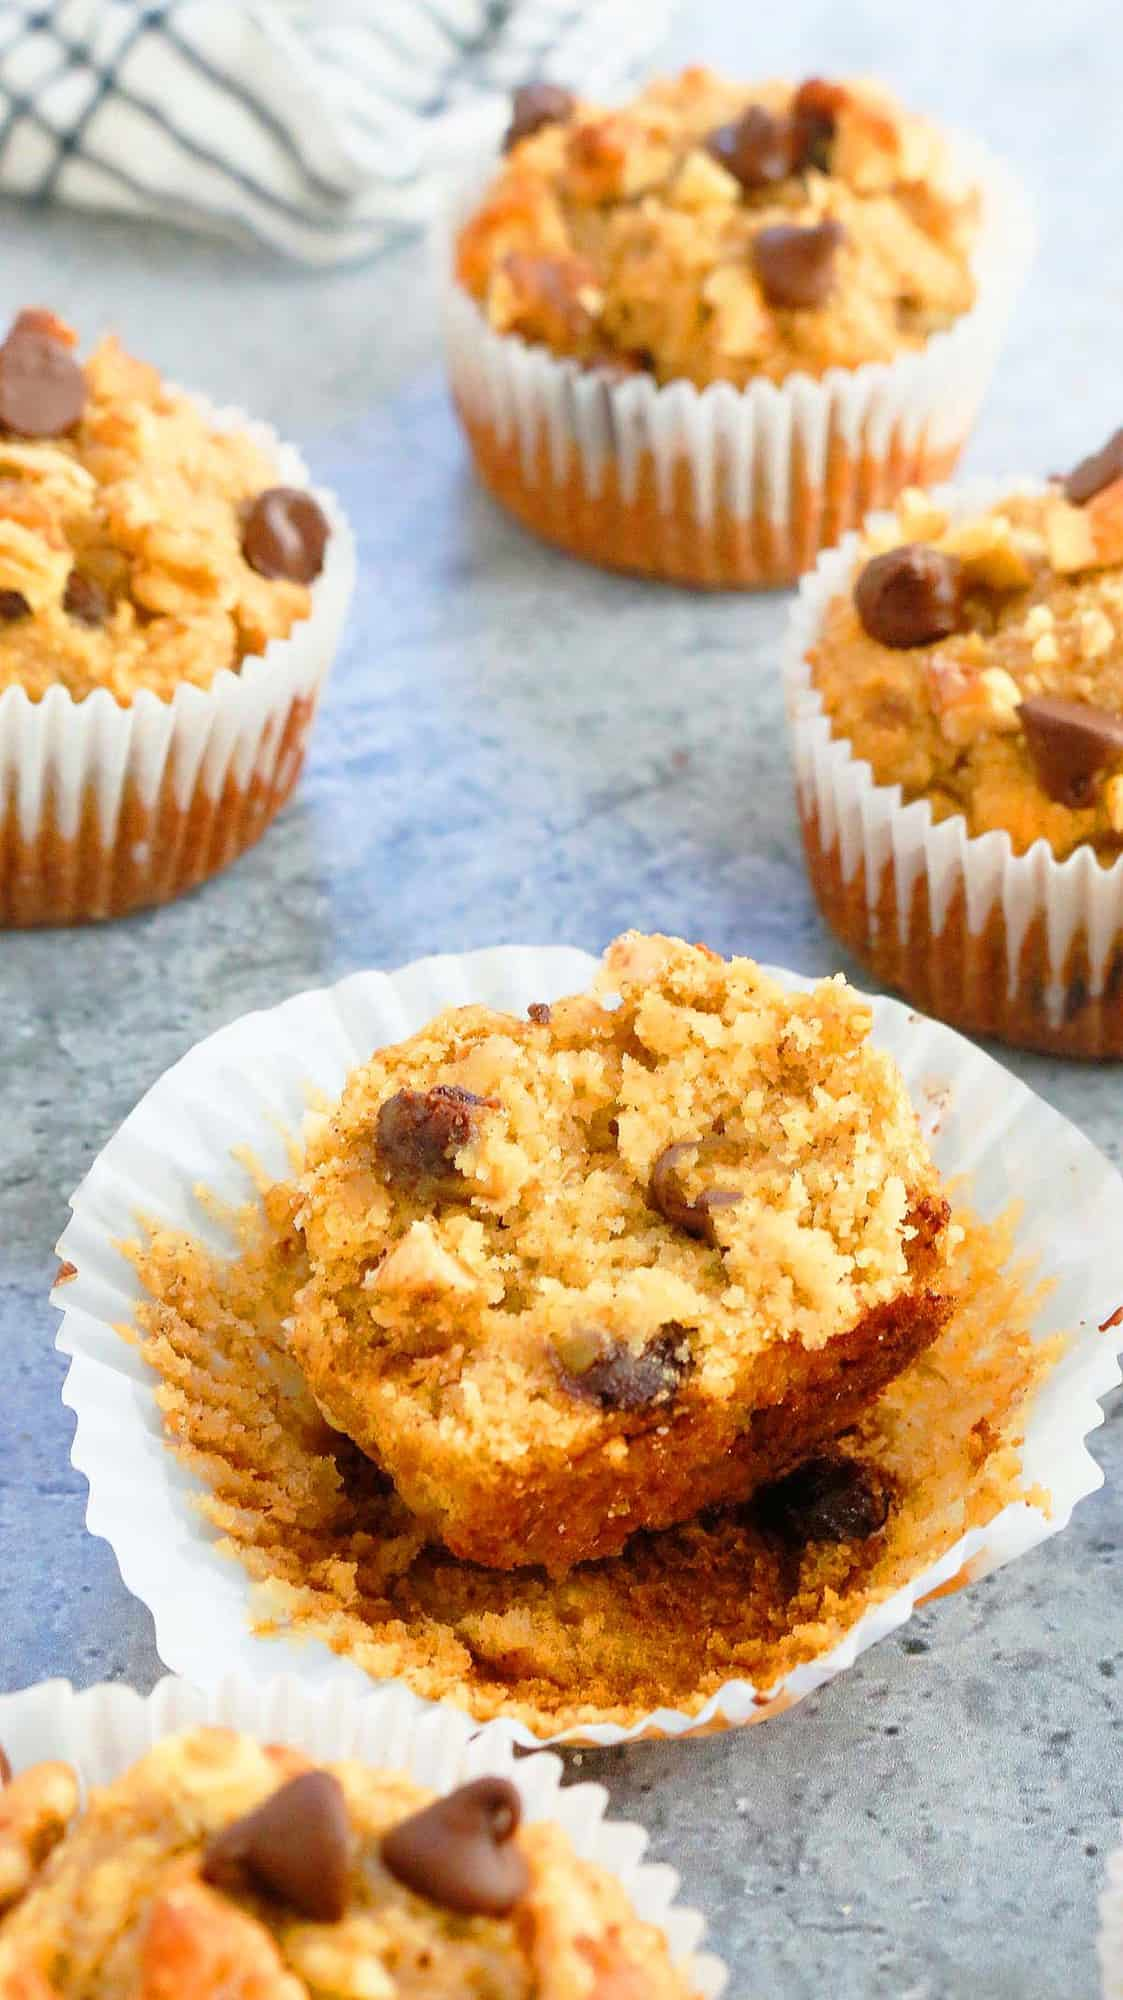 a split almond flour banana muffin along with more muffins